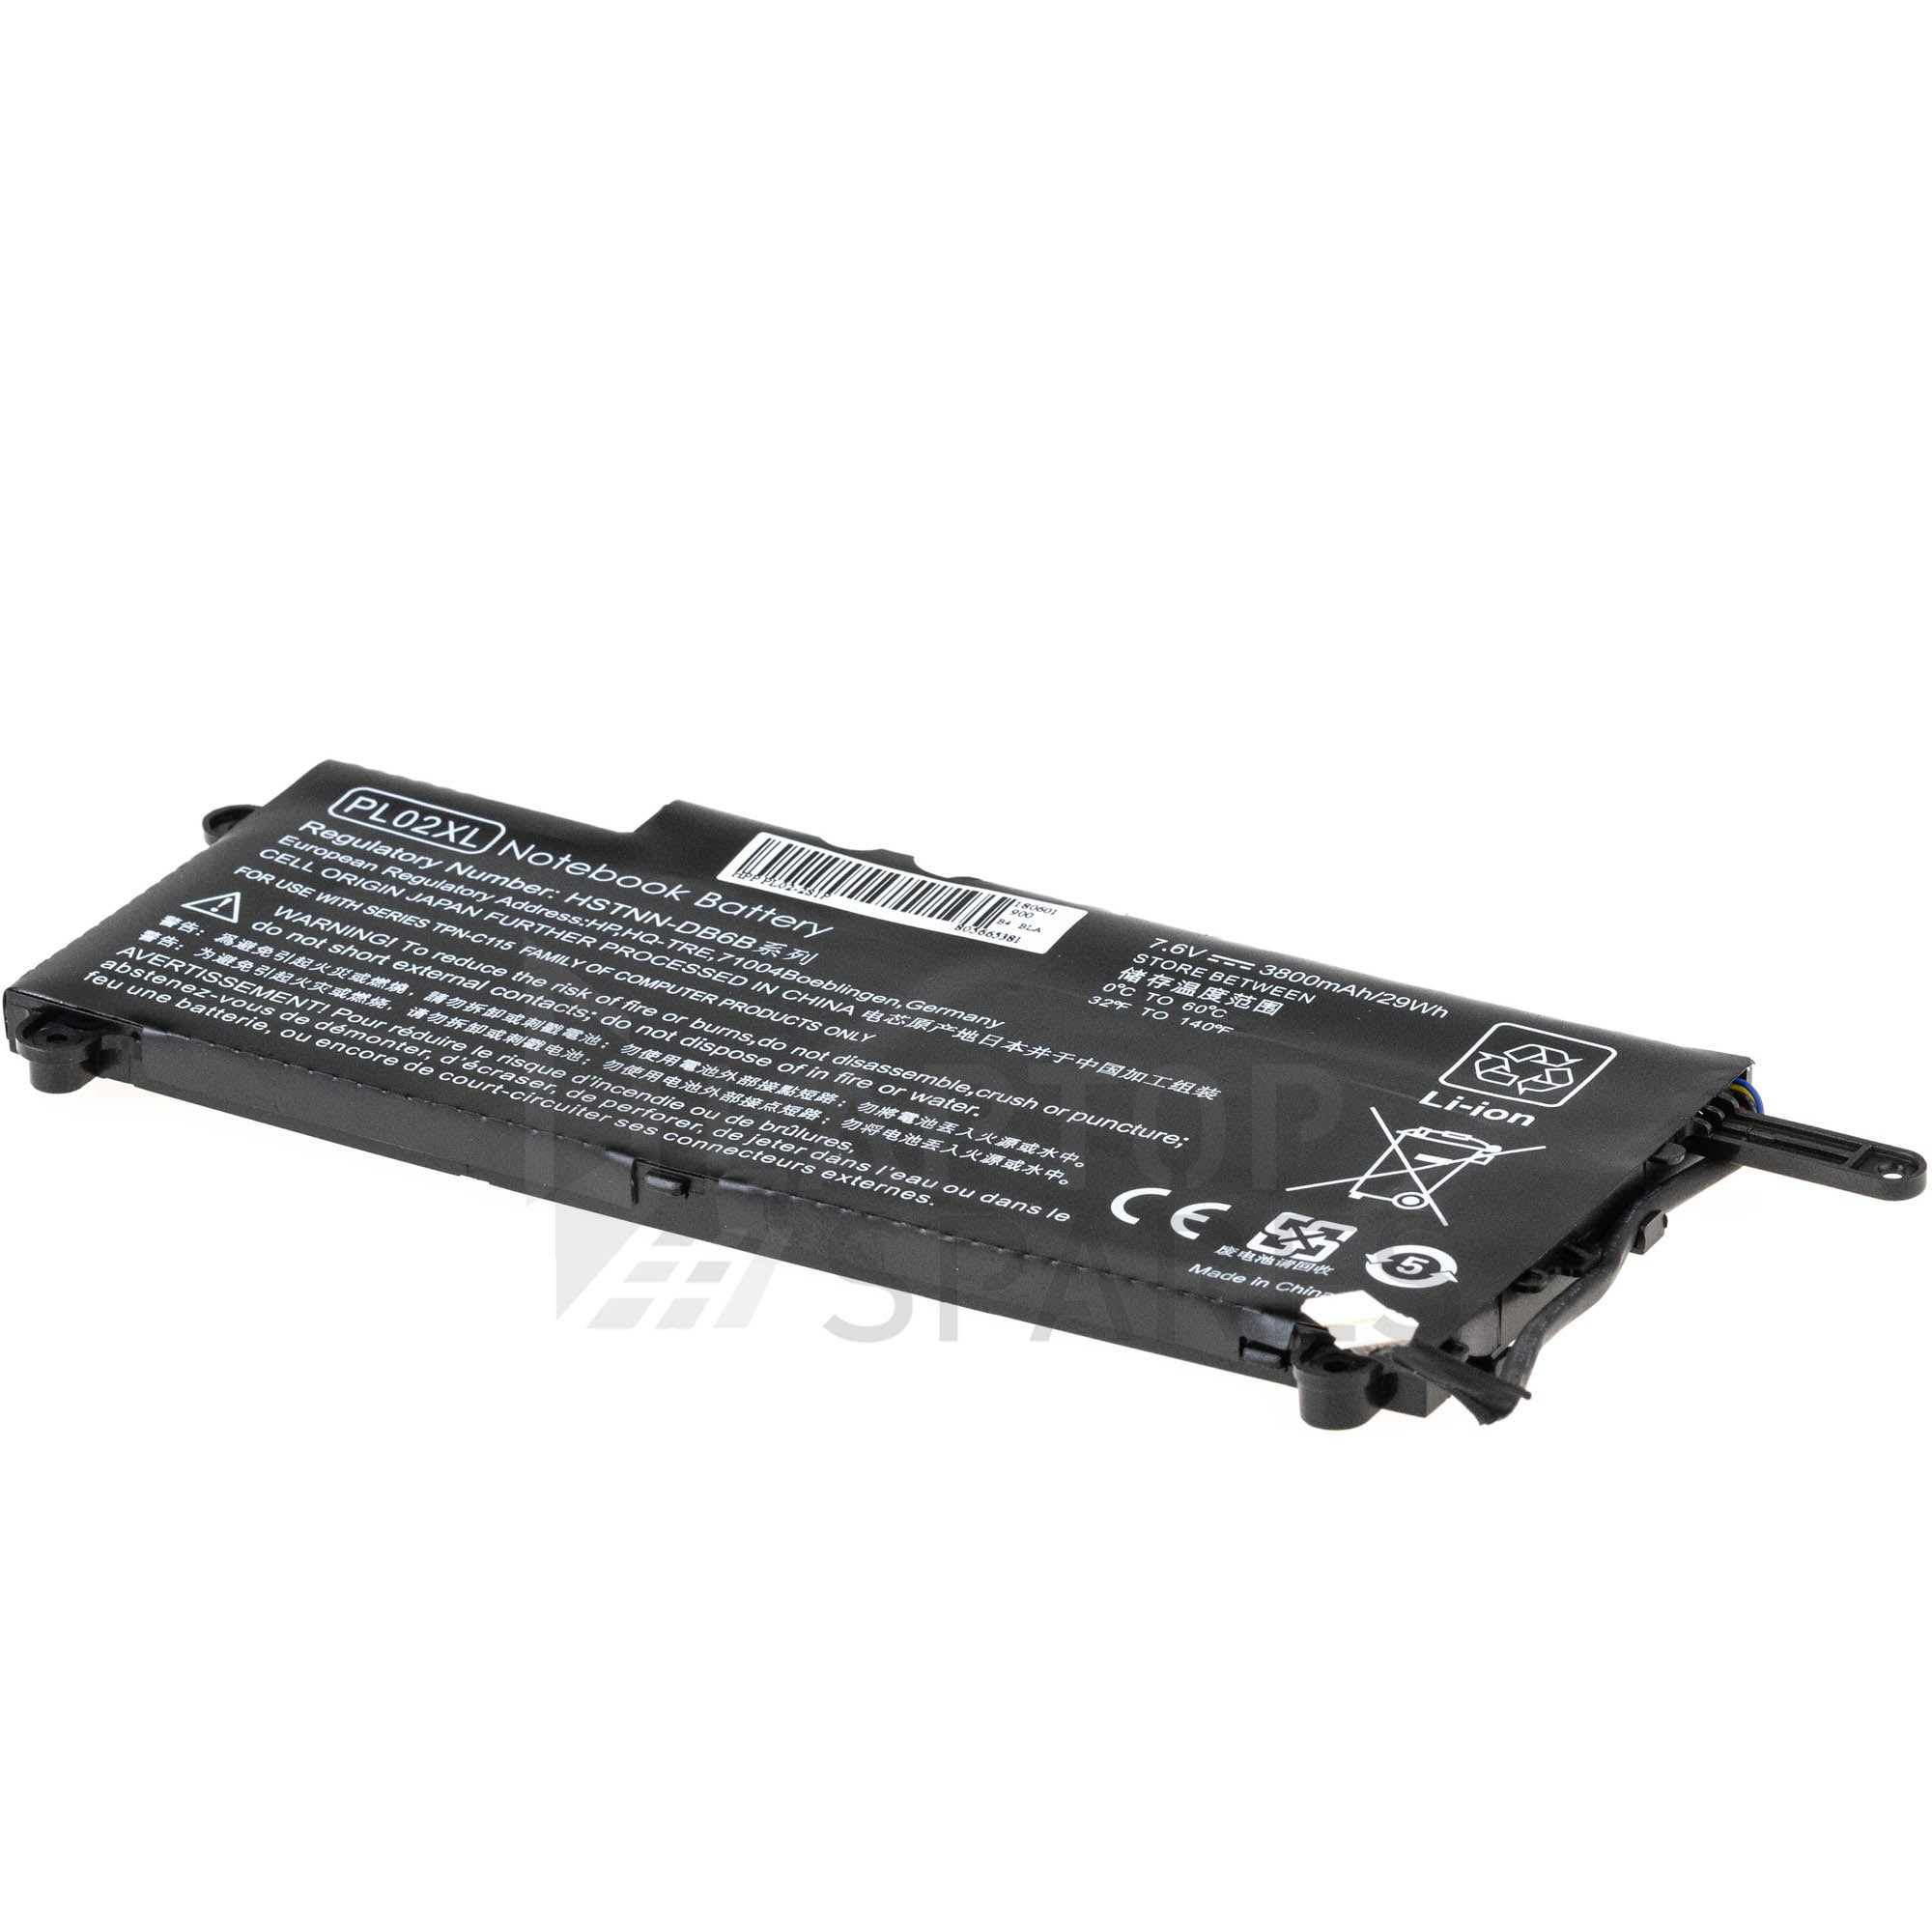 HP HSTNN-SB0H HSTNN-SBOH 3800mAh 4 Cell Battery